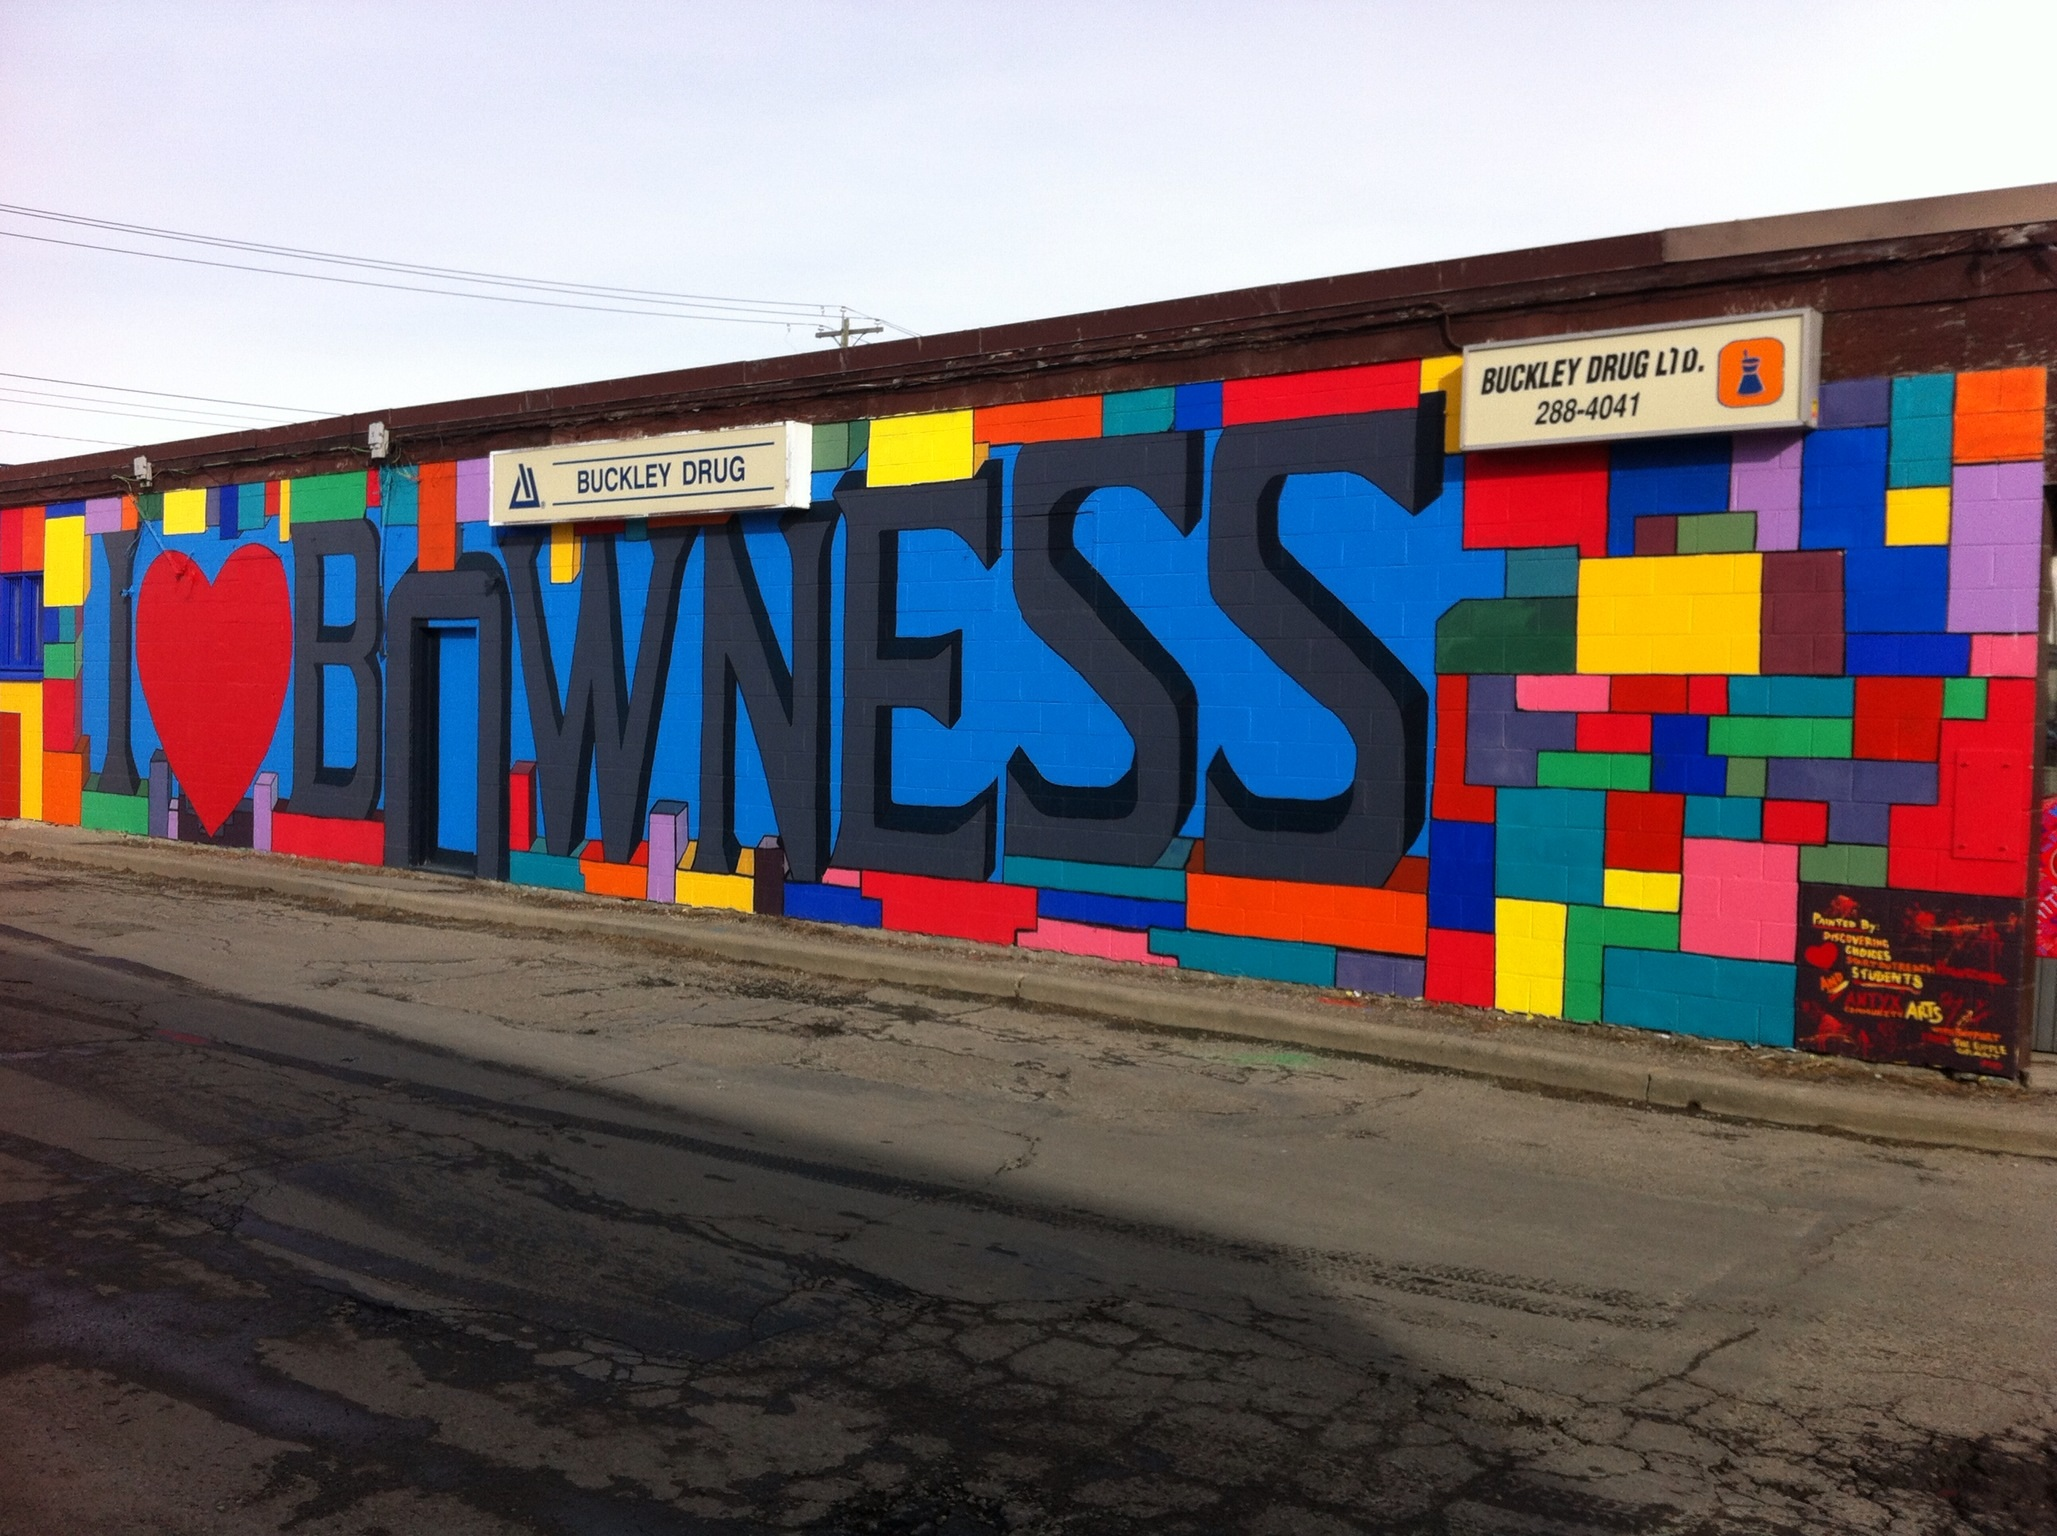 I Love Bowness mural. Community pride project by youth.